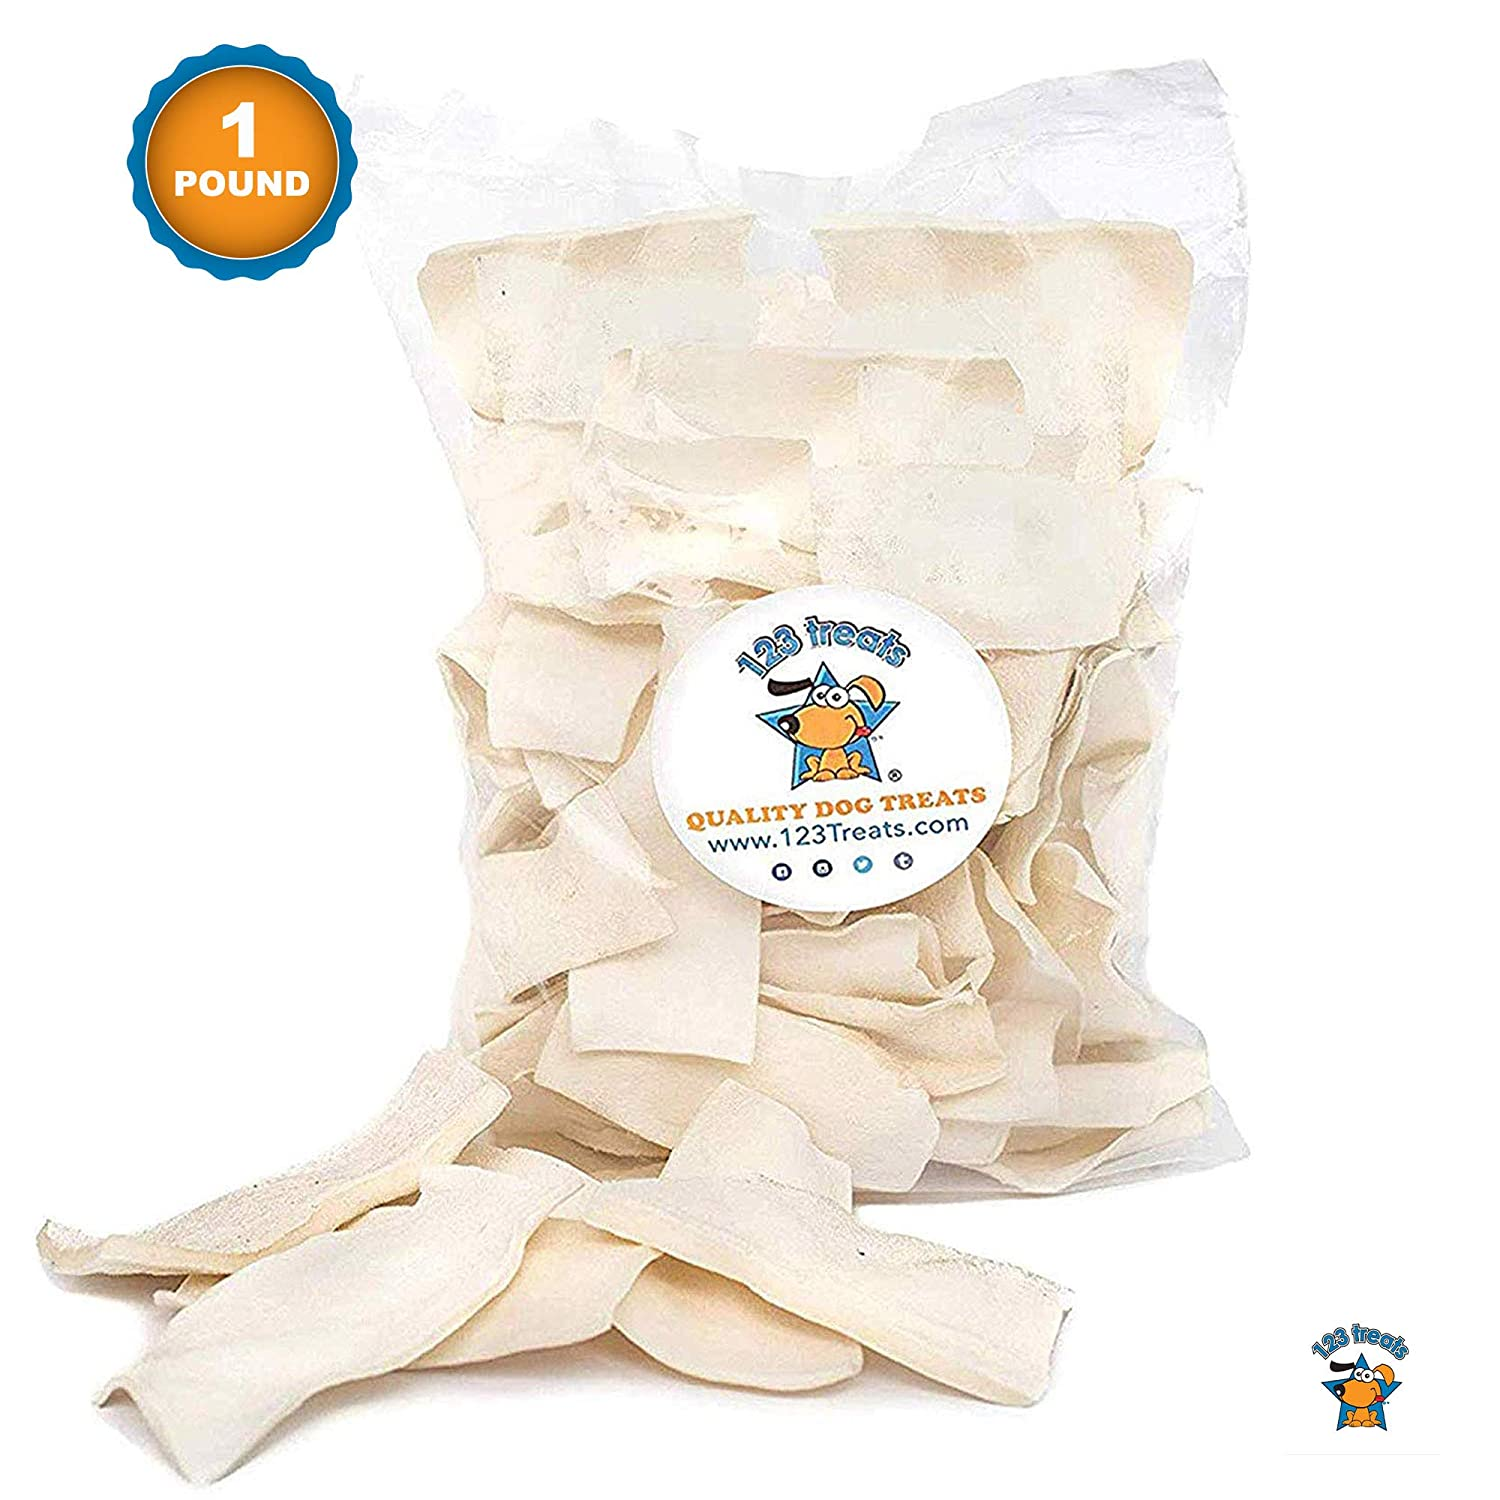 123 Treats - Rawhide Chips Dog Chews | 100% All-Natural Grass-Fed Free-Range Beef Hide for Dogs with No Hormones, Additives or Chemicals